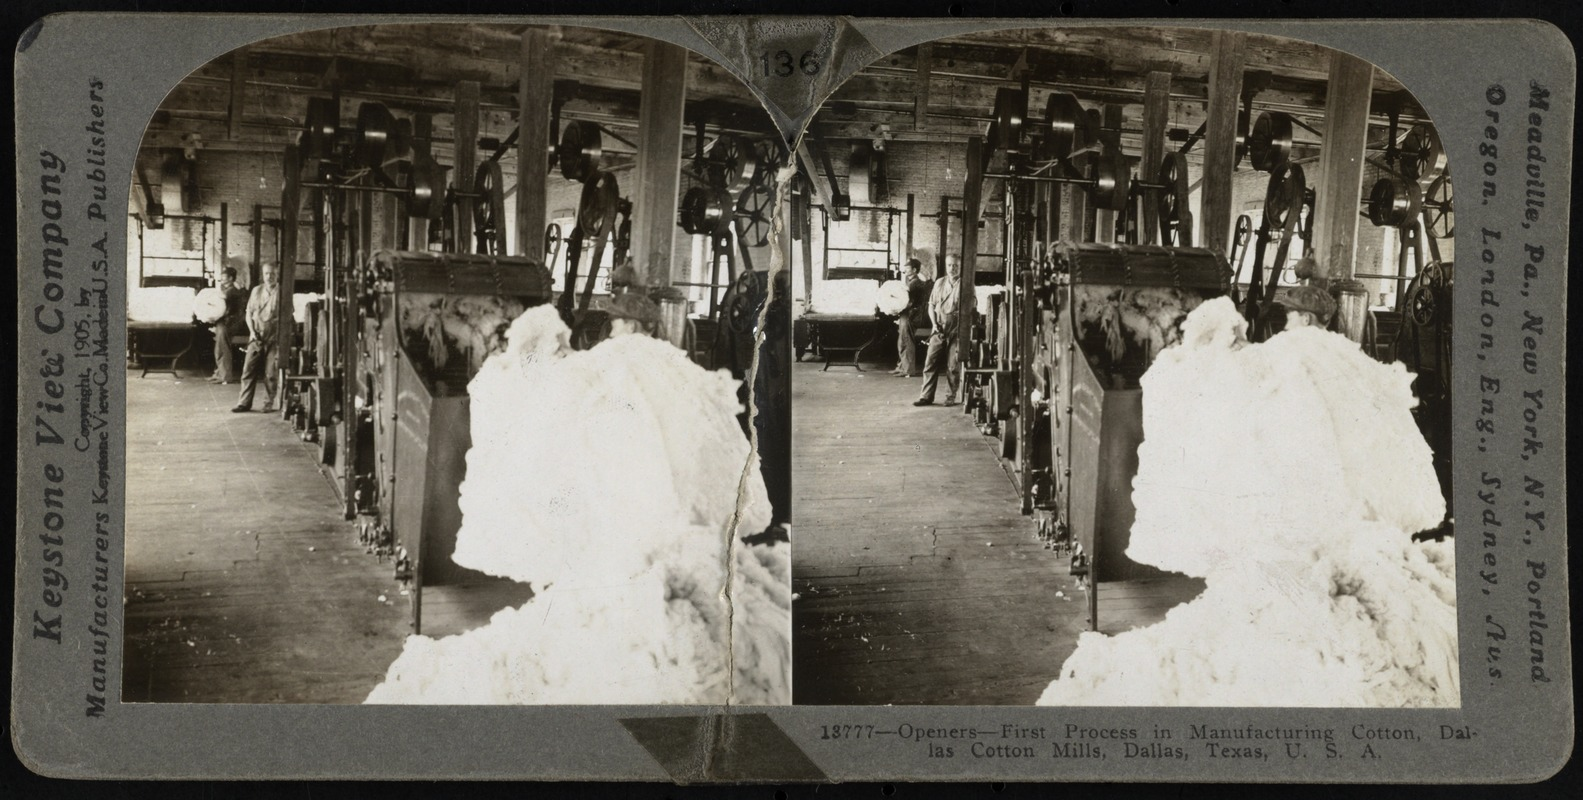 Openers - first process in manufacturing cotton